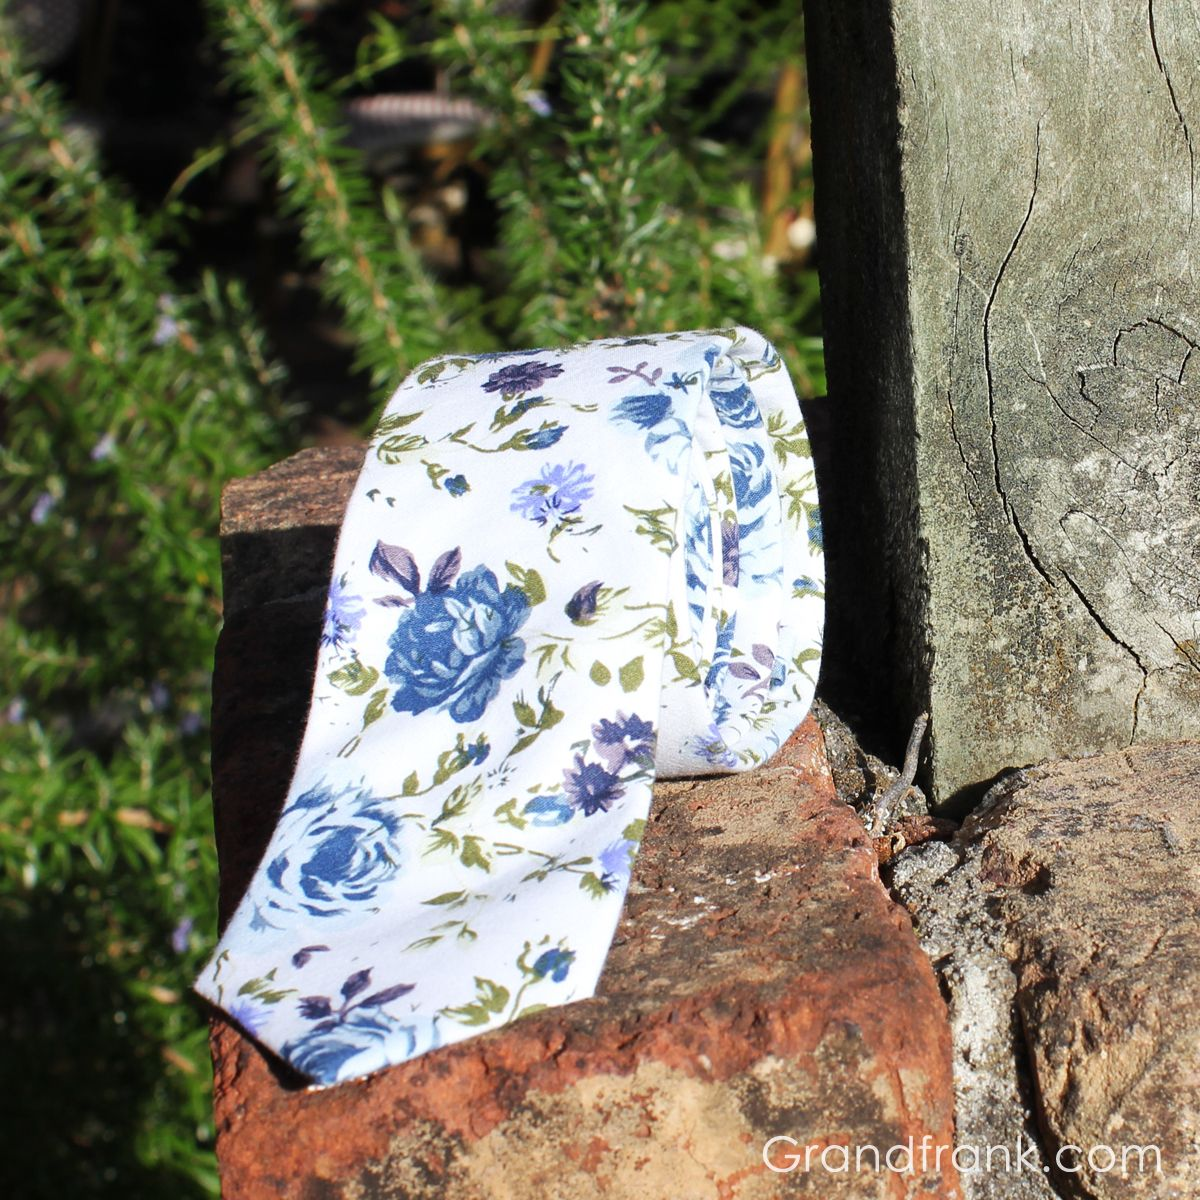 White and blue floral, smells like summer! By #grandfrank